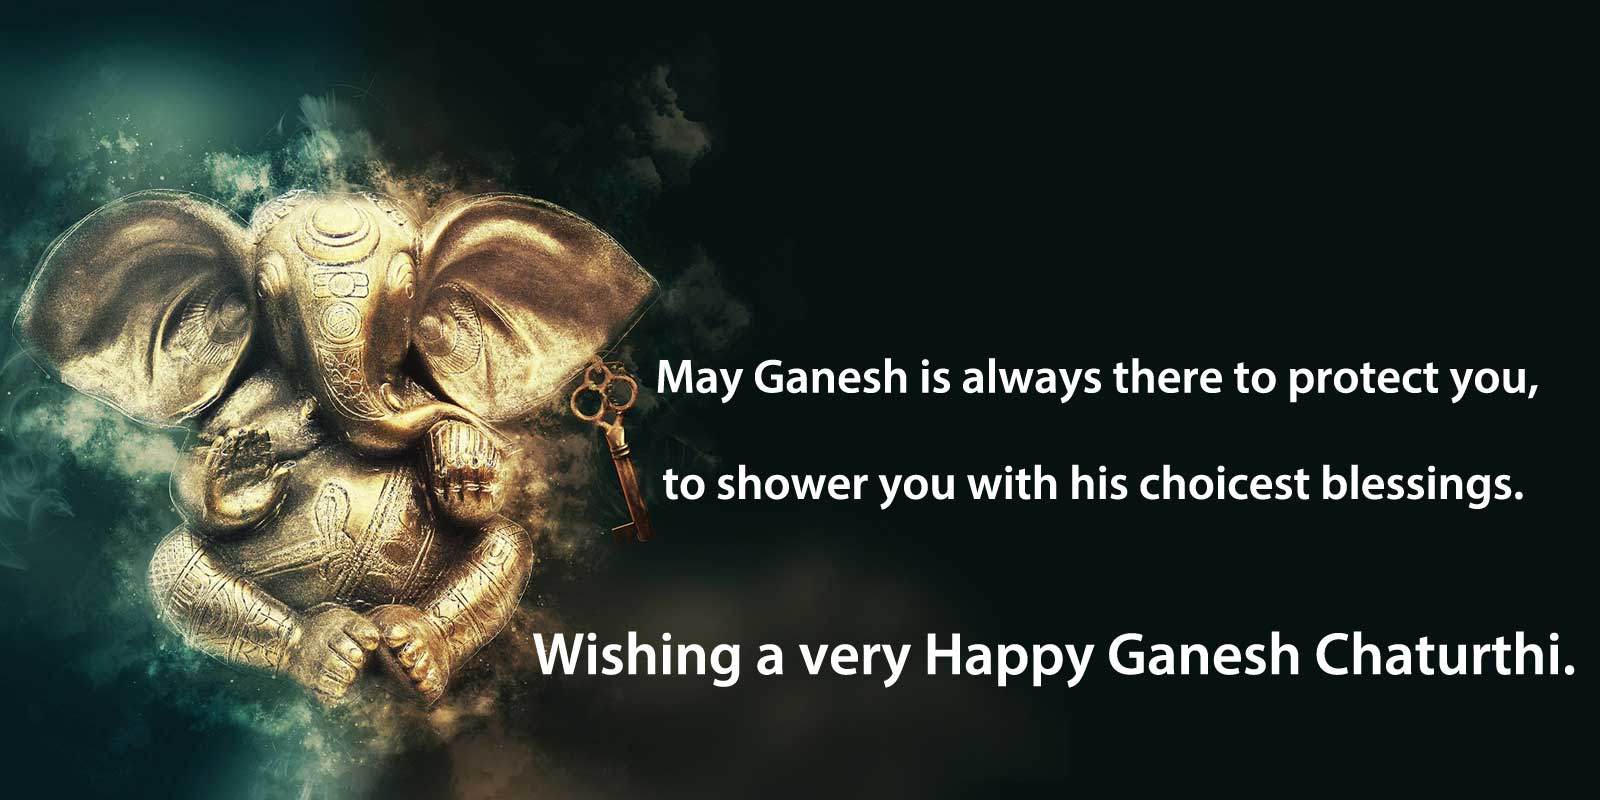 Happy Ganesh Chaturthi Wishes and Quotes - Well Quo